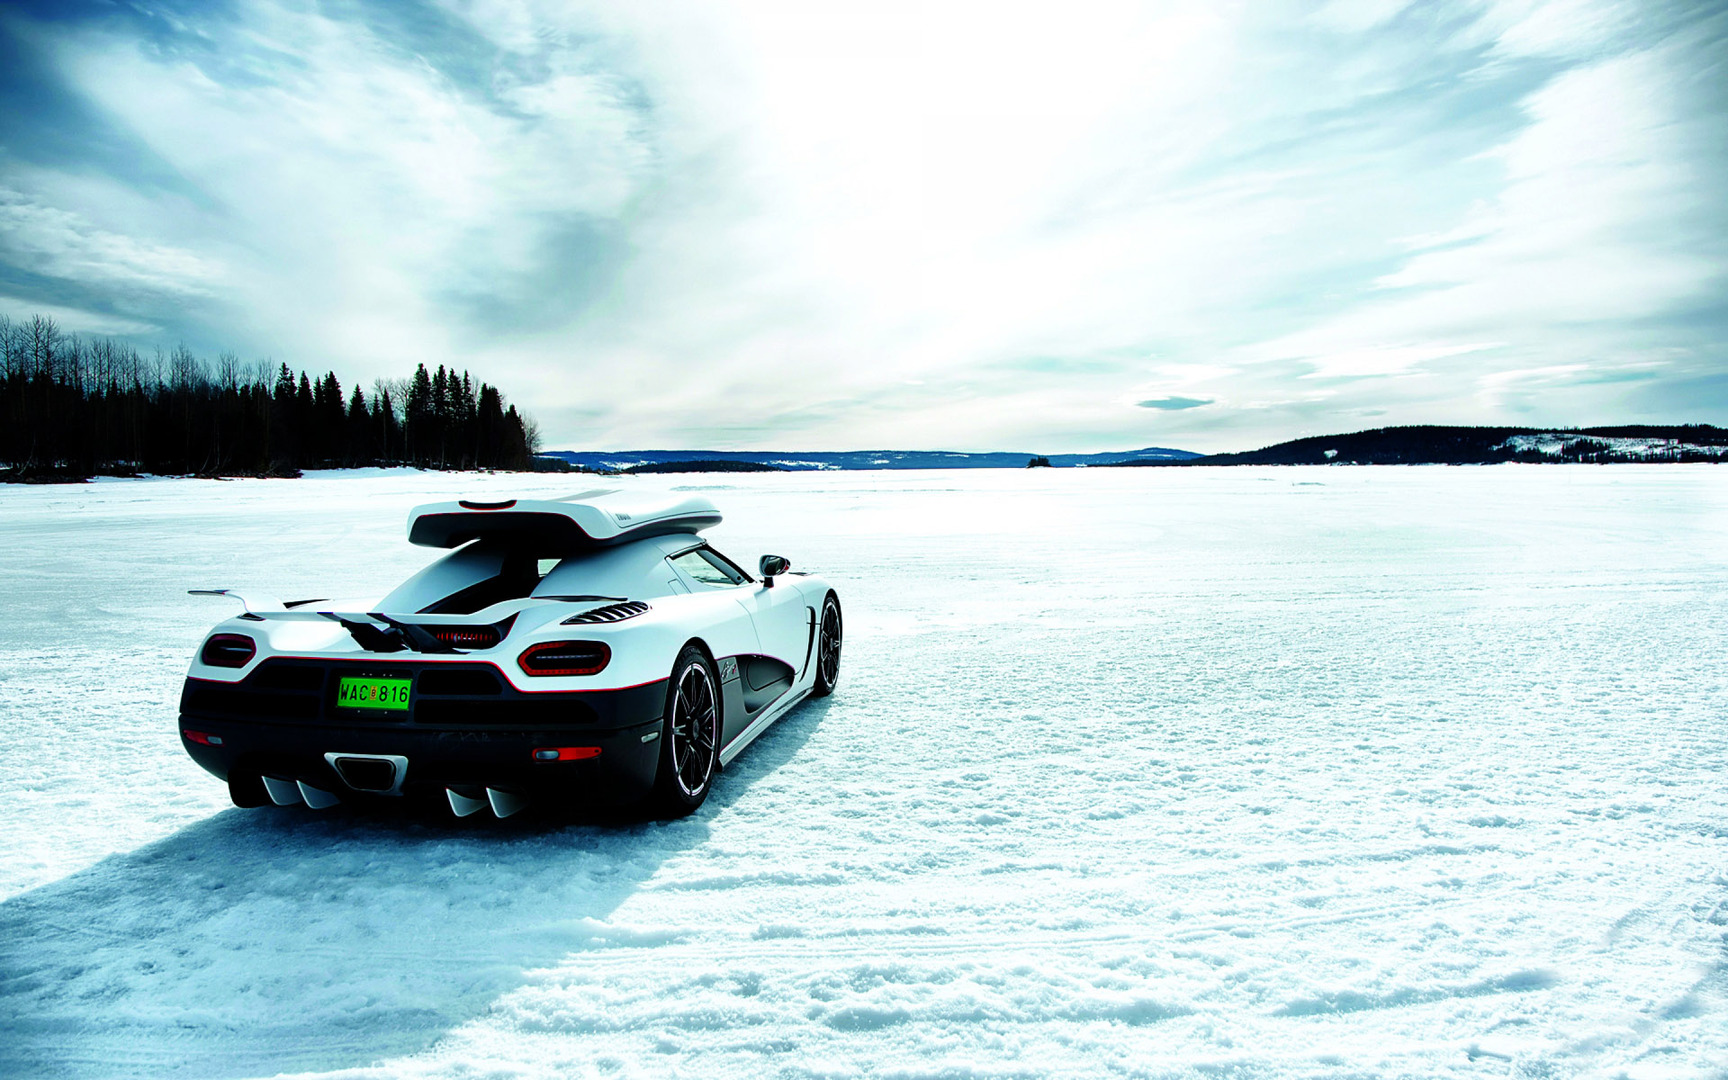 Download Koenigsegg Agera R wallpaper 1728x1080